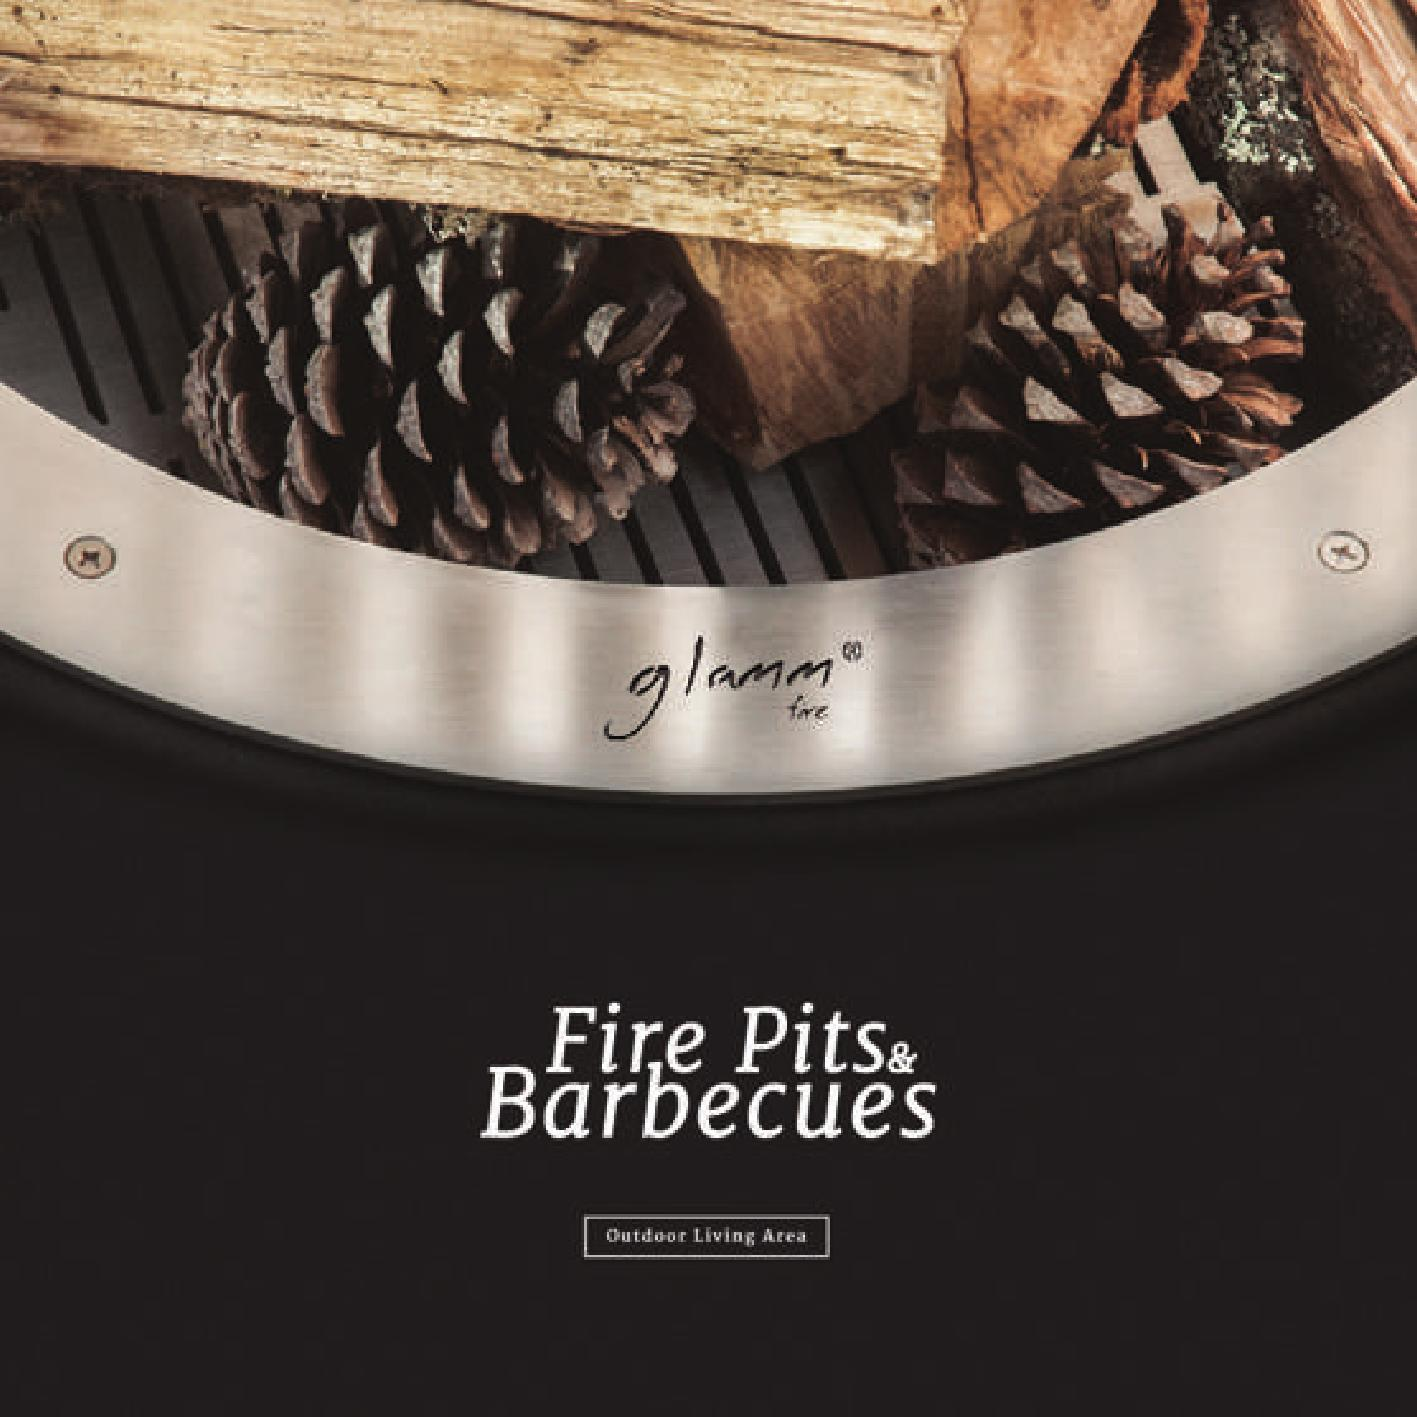 Brochura Fire Pits & Barbecues